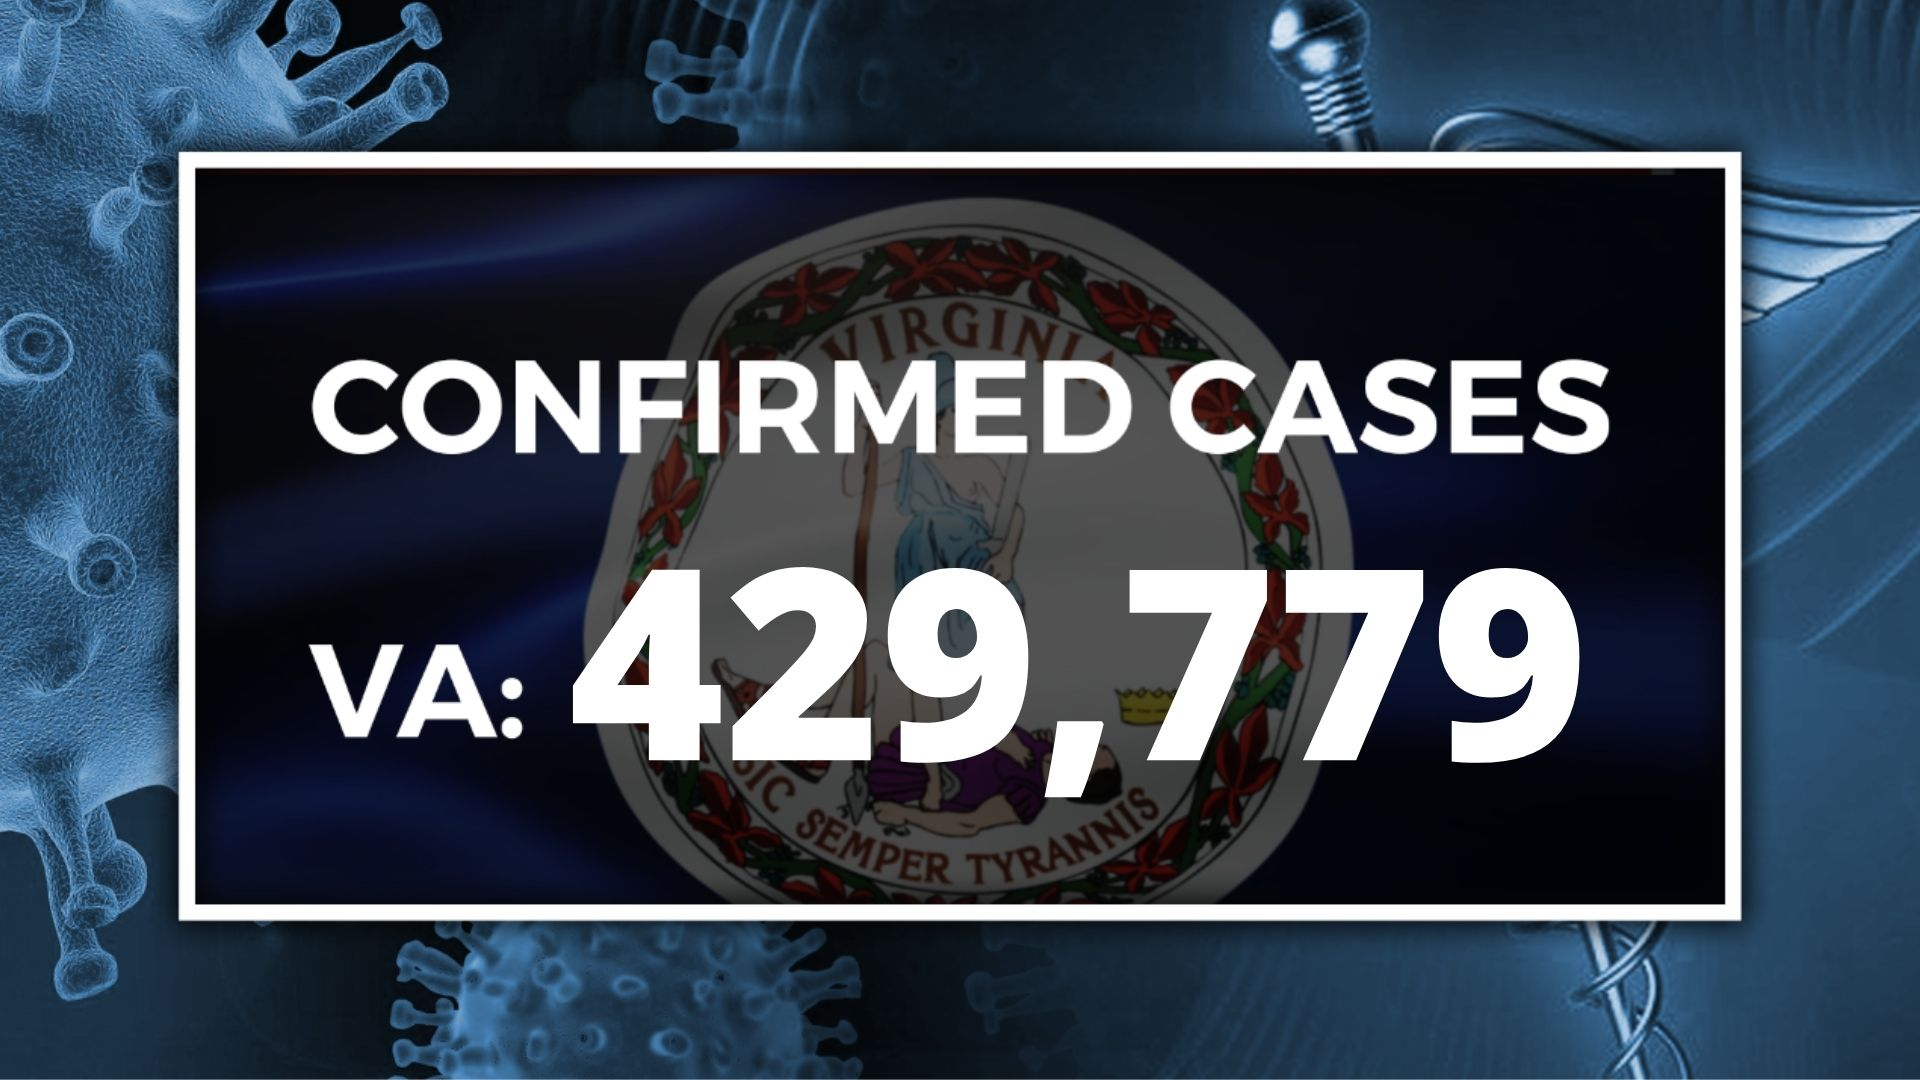 Christmas Break 2021 Tazewell County Vdh New Covid 19 Death In Tazewell County 67 New Cases In Southwest Virginia Wjhl Tri Cities News Weather